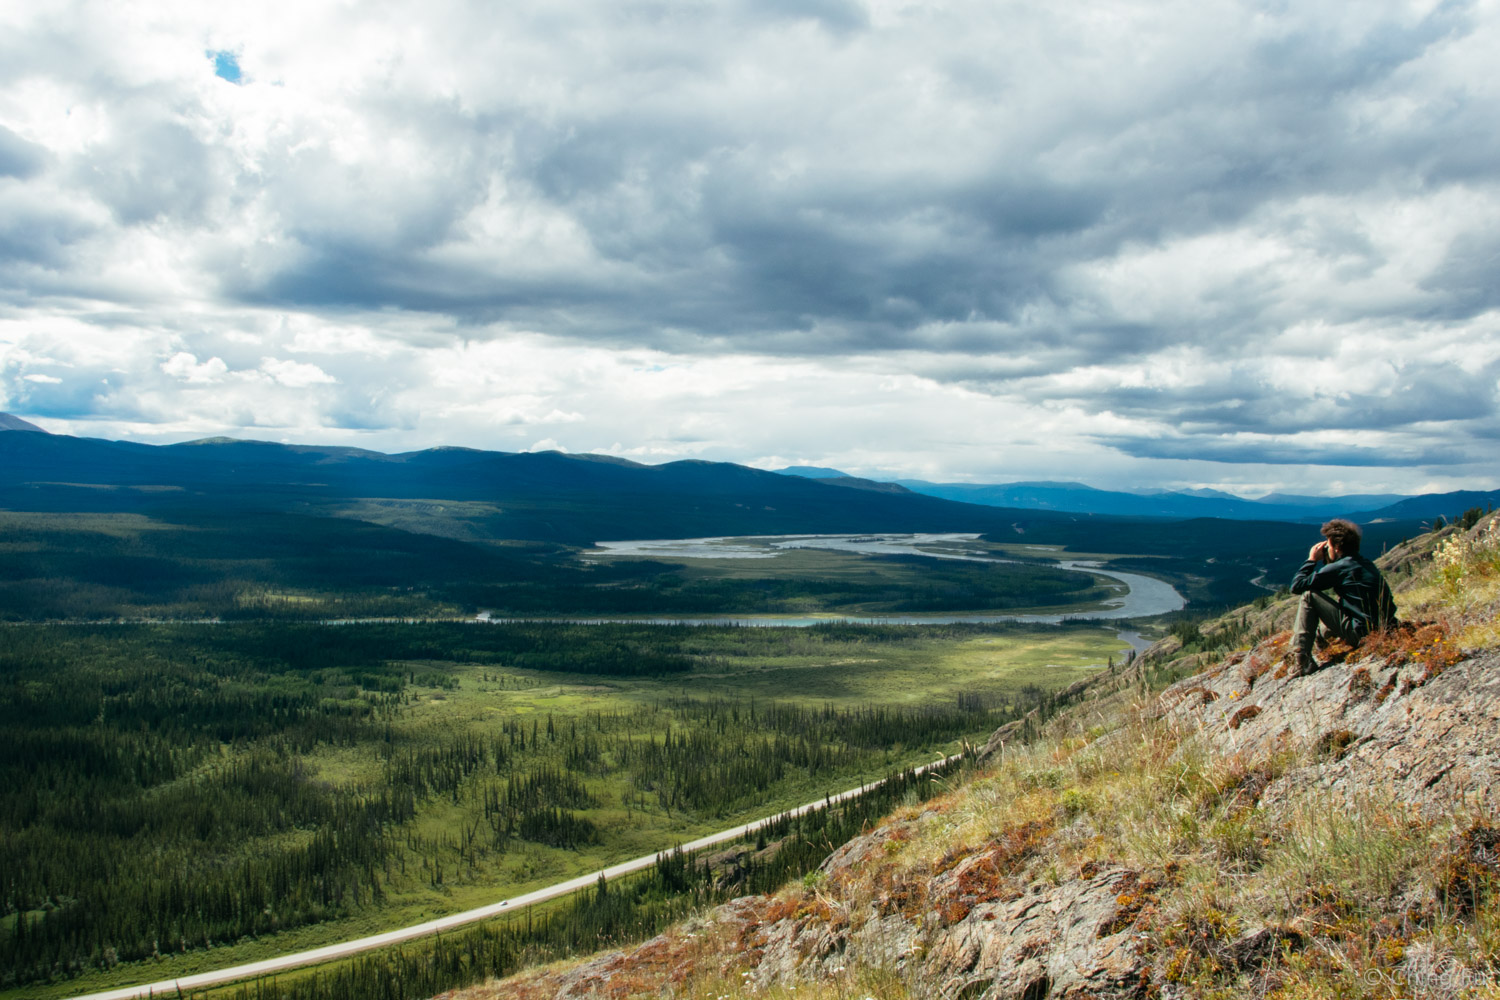 View of the Yukon River and Alaska Highway from the top of our hike.